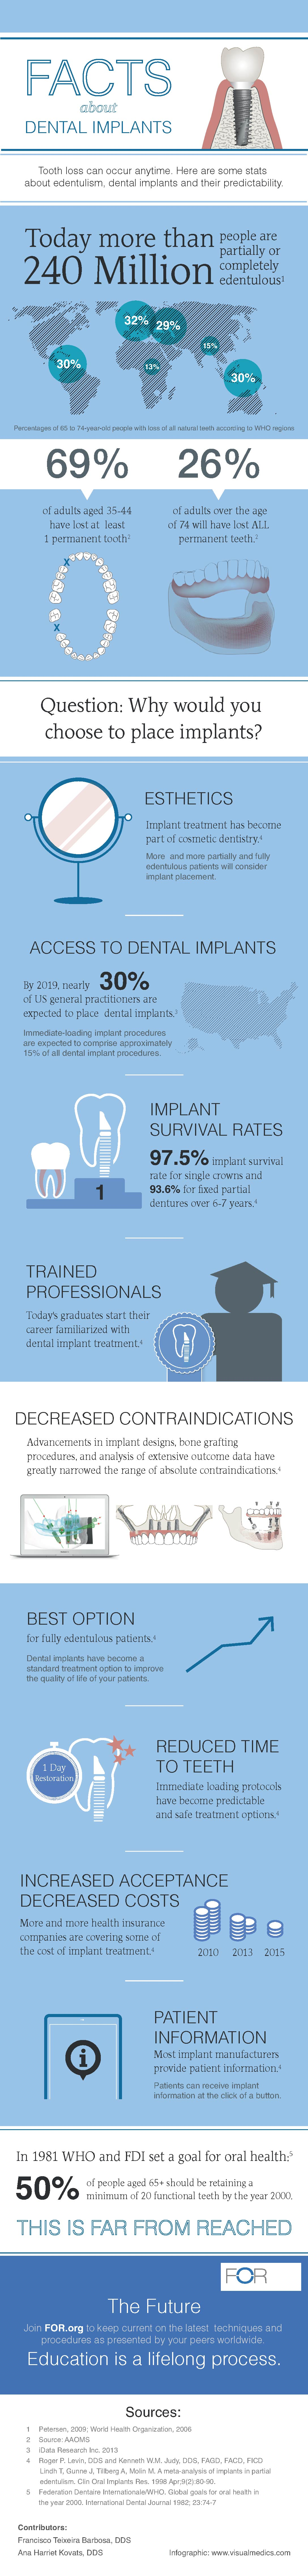 10 Facts About Dental Implants